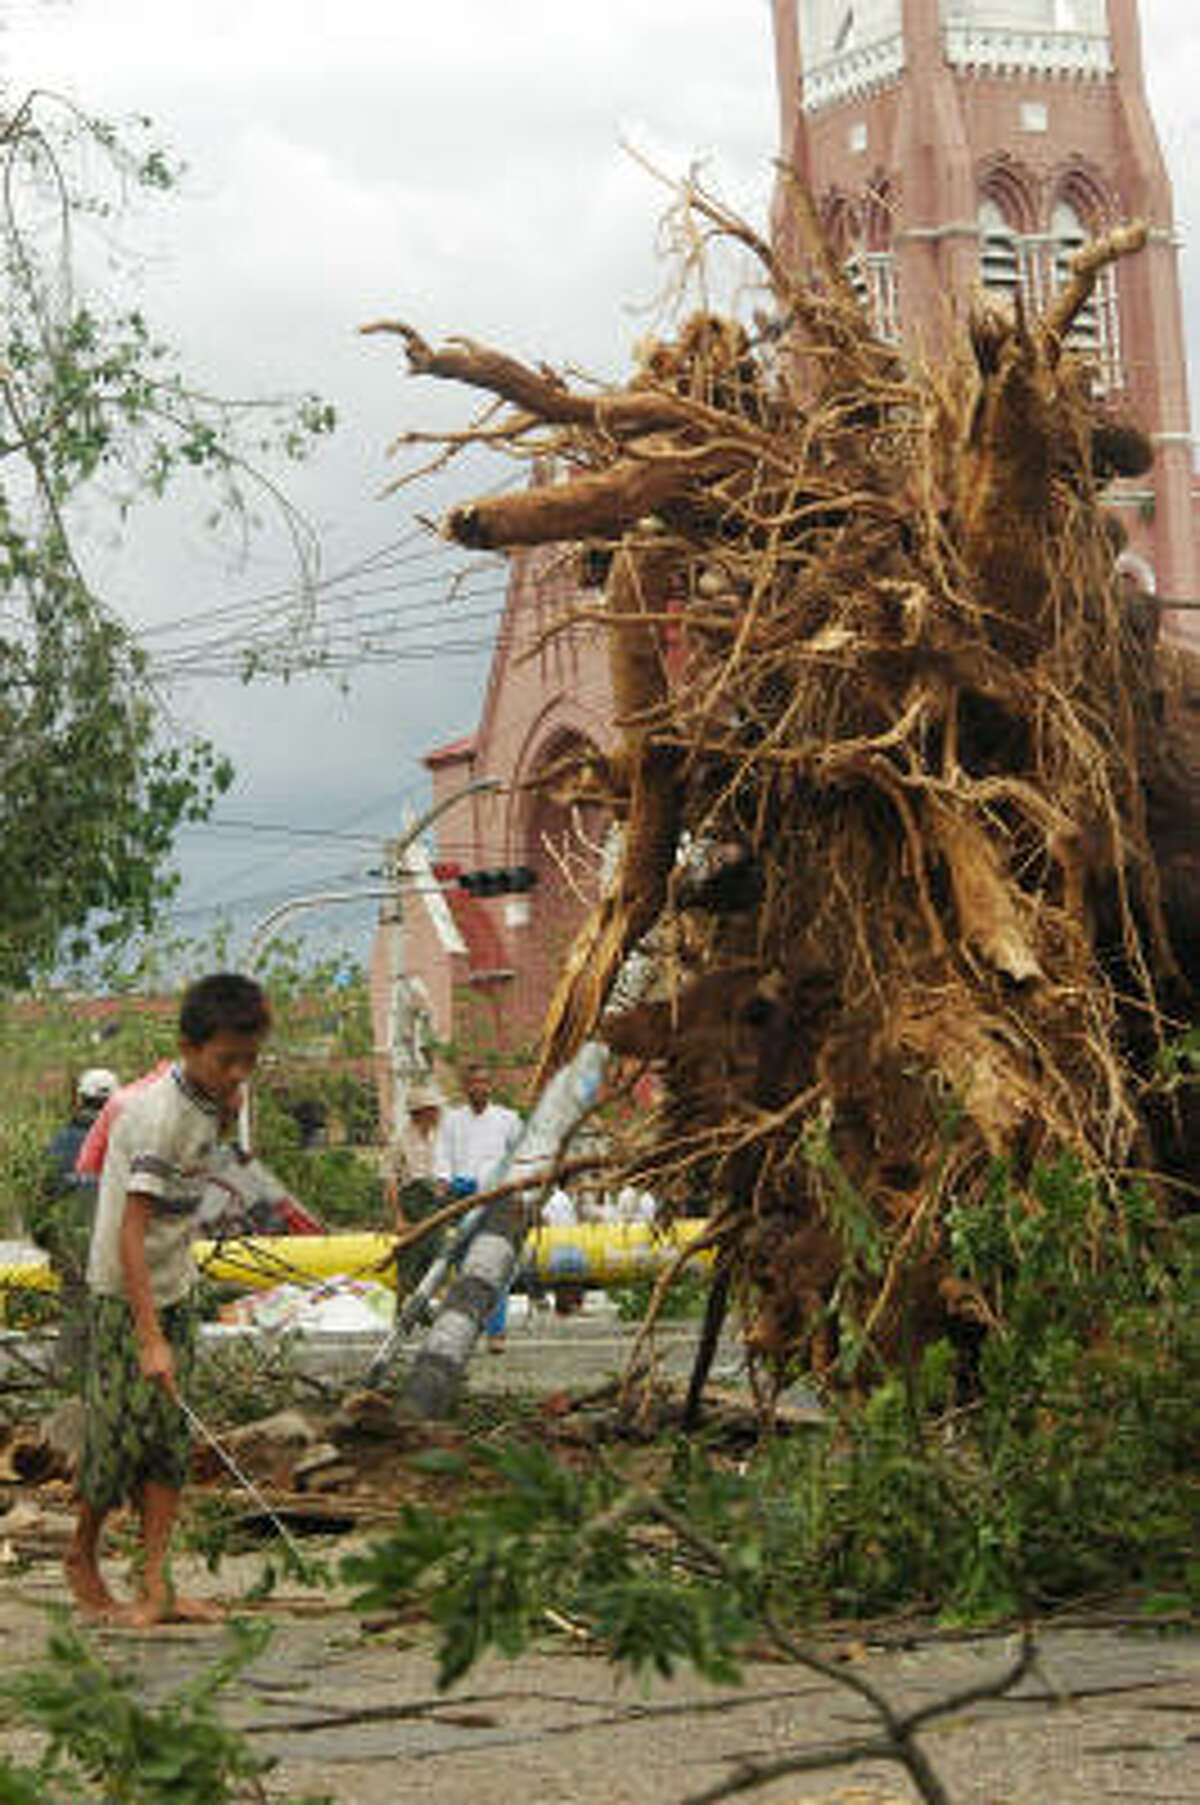 A resident walks near a tree uprooted during cyclone Nargis in Yangon on Sunday. Myanmar residents awoke to devastation after tropical cyclone Nargis tore through swathes of the country, battering buildings, sinking boats and killing at least 350 people, officials said.